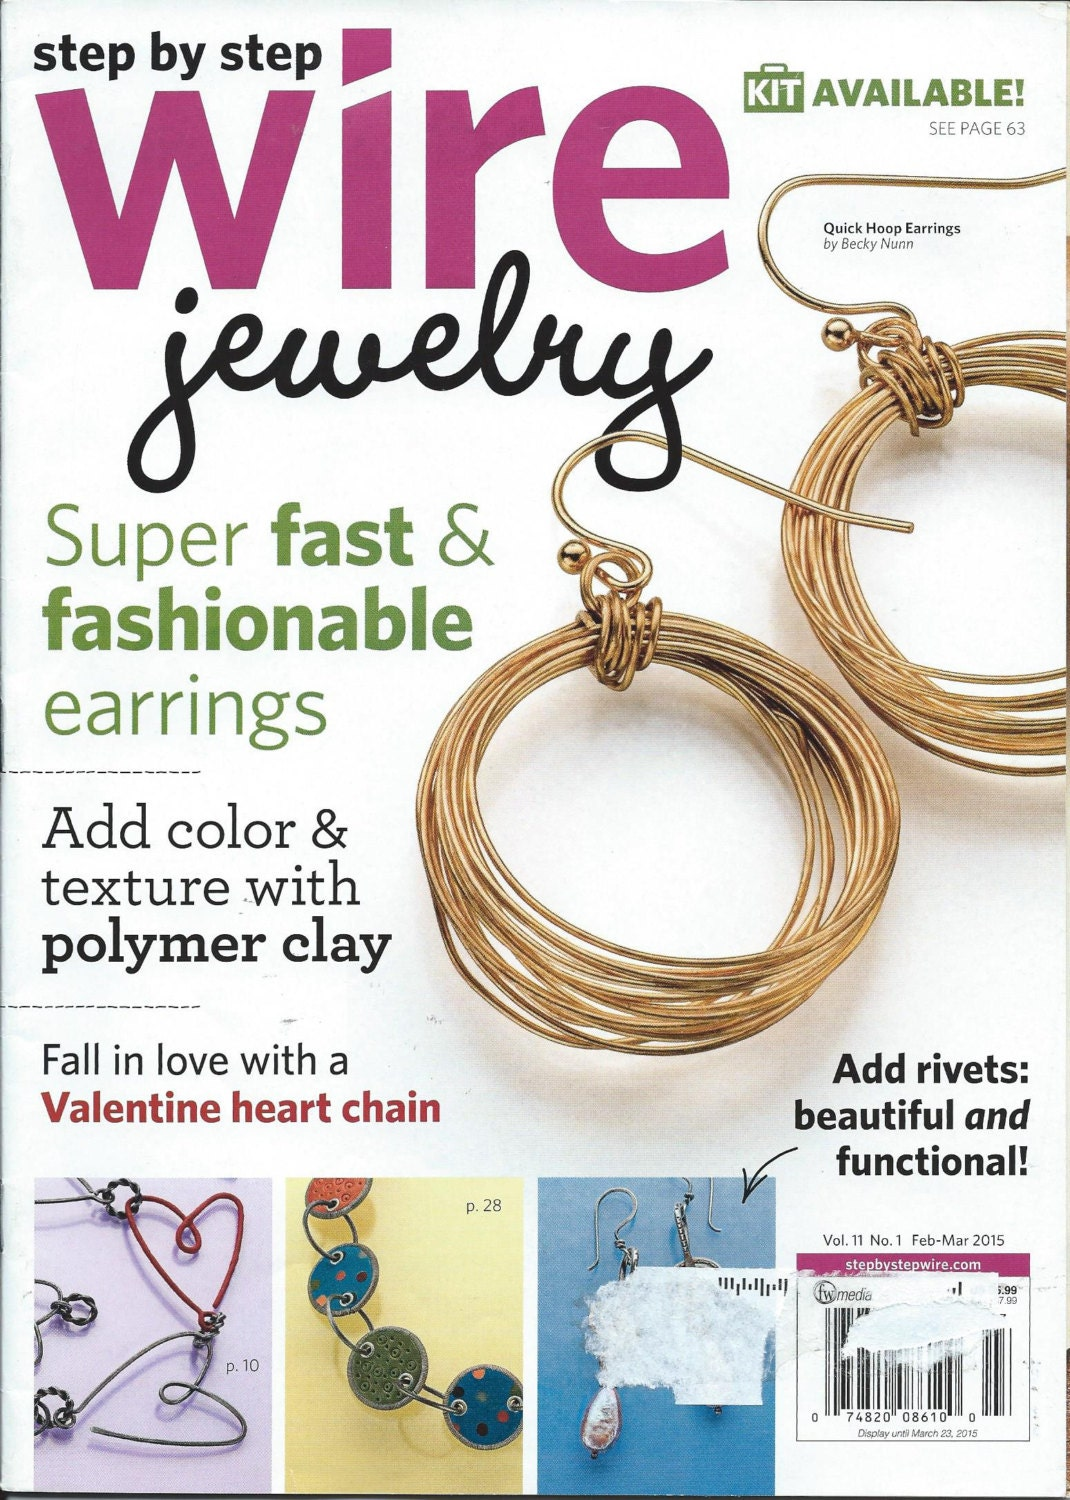 step by step wire jewelry magazine february march 2015 issue